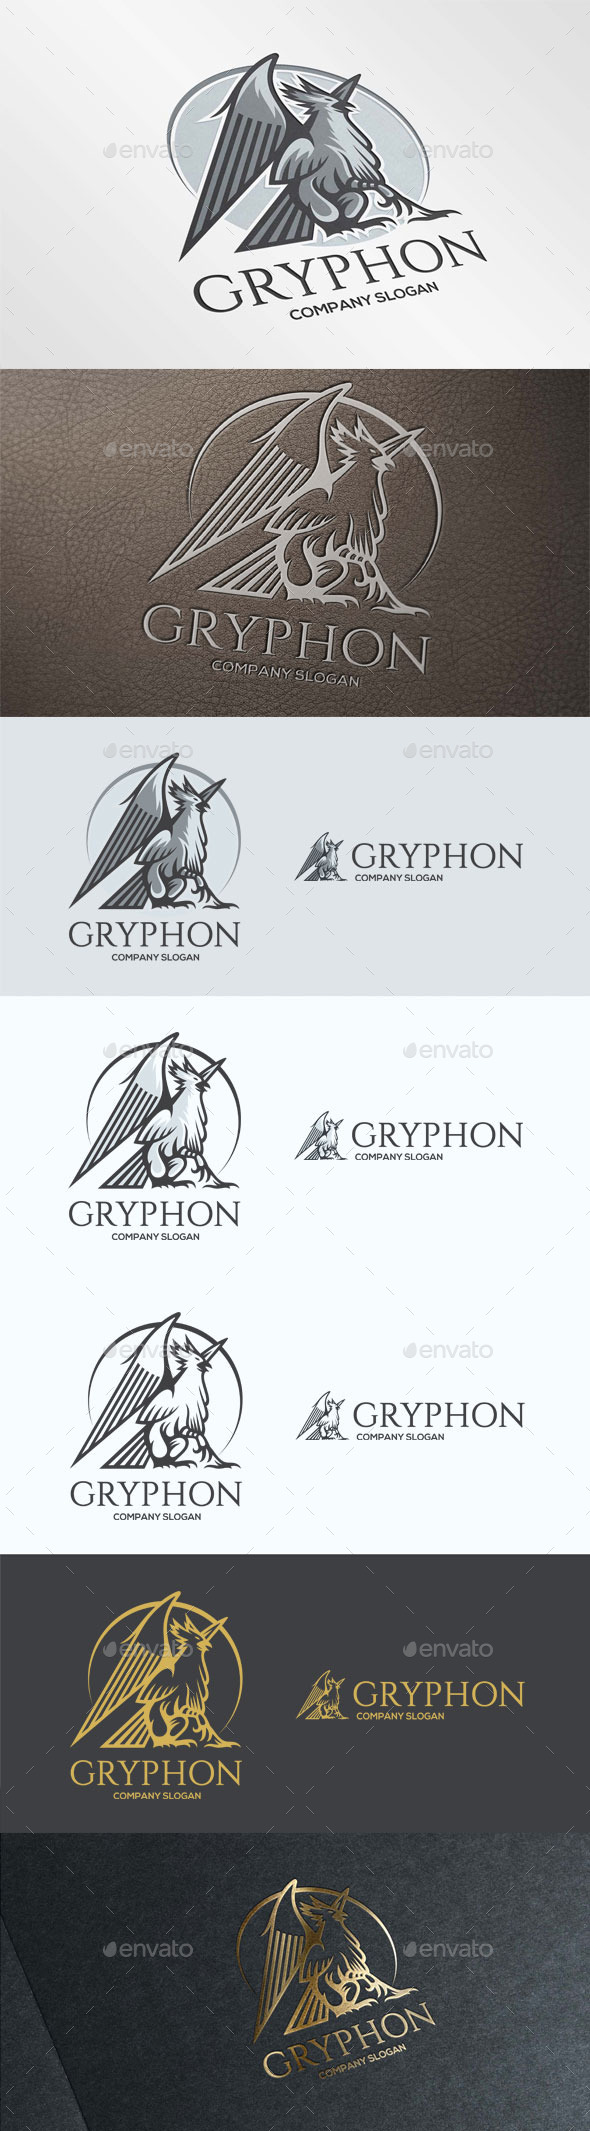 Gryphon Logo Template - Animals Logo Templates